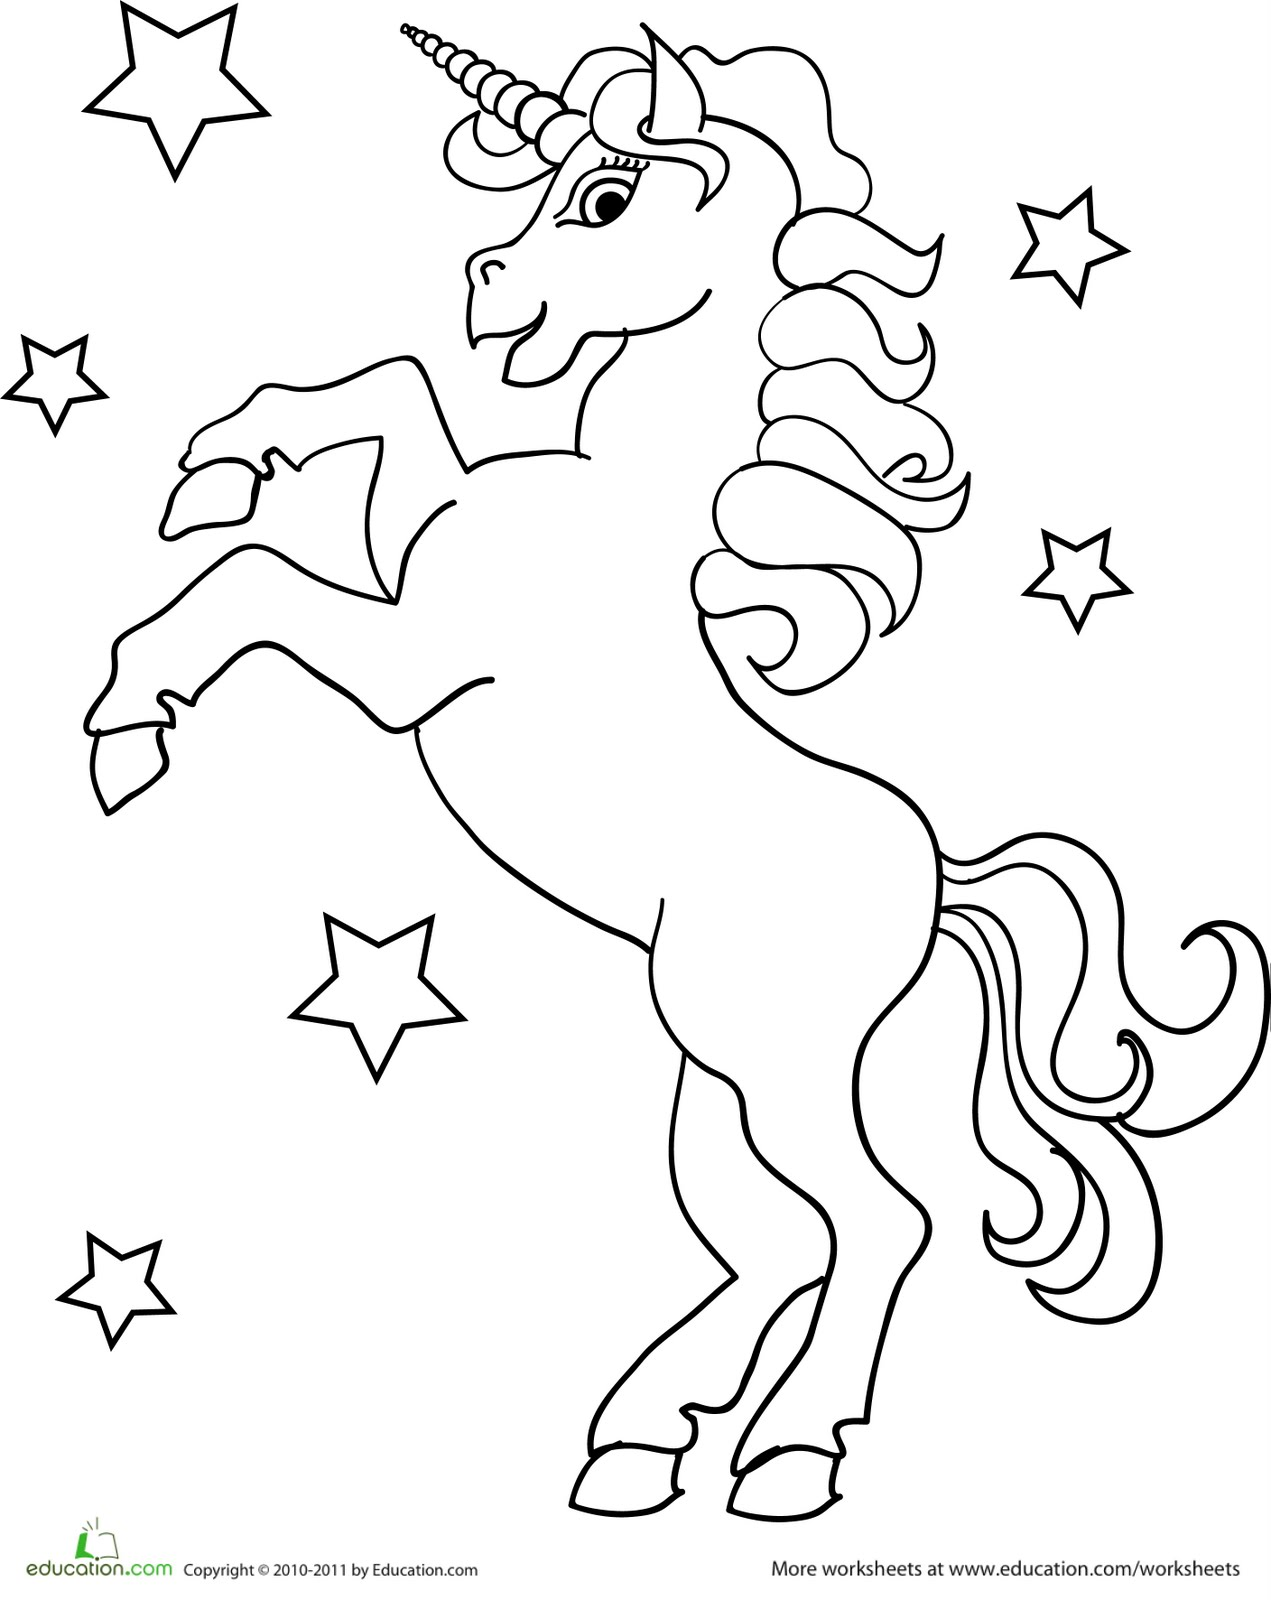 Free Unicorn Maze Coloring Pages Unicorn Coloring Pages